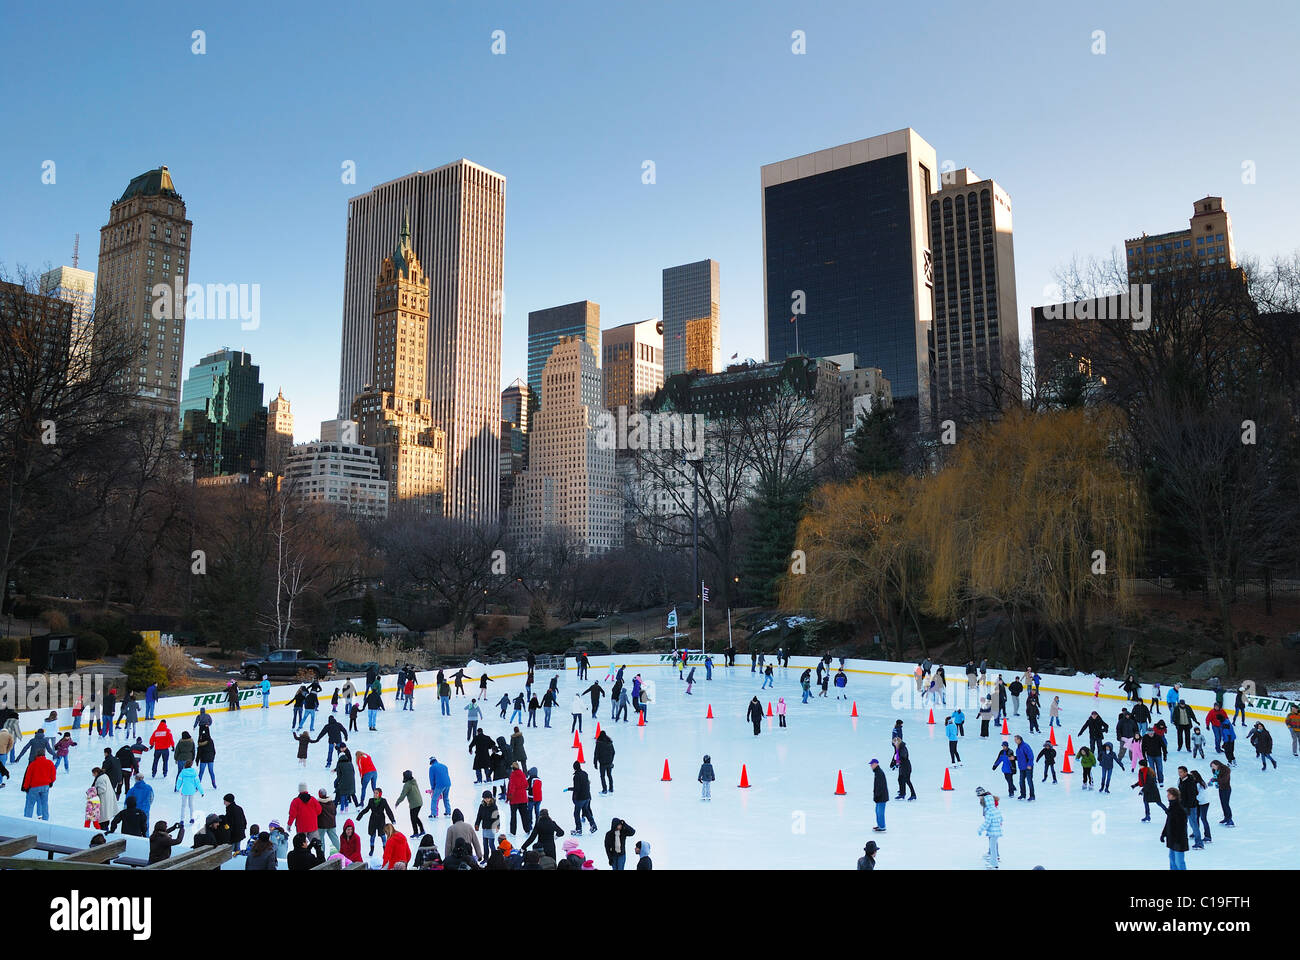 Central Park Ice Skate Rink, New York City Manhattan with skyscrapers - Stock Image